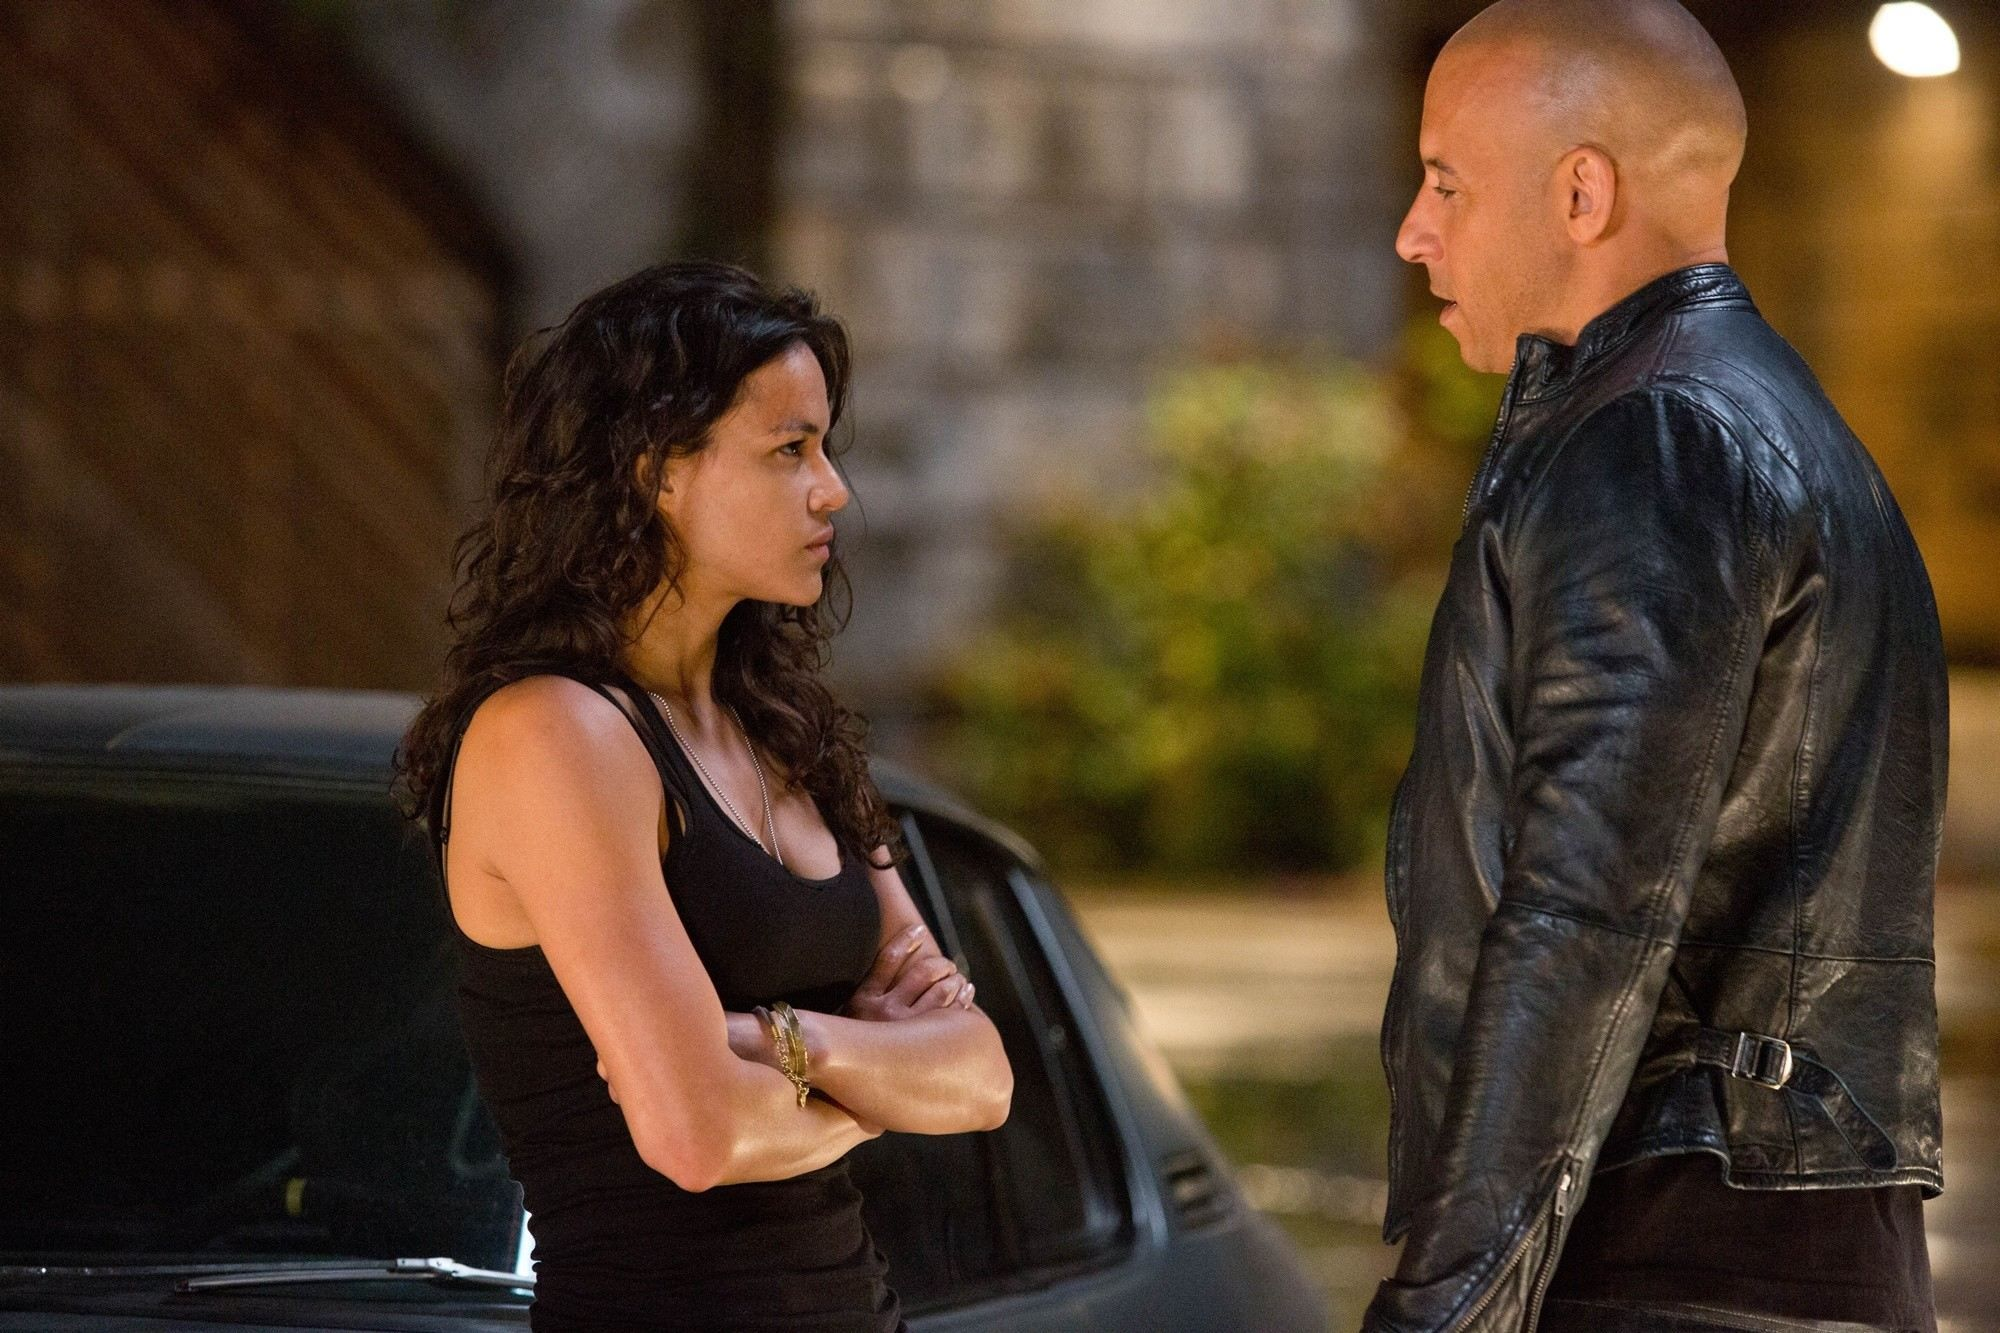 Fast and Furious, Dom and Letty. Aint that the truth!